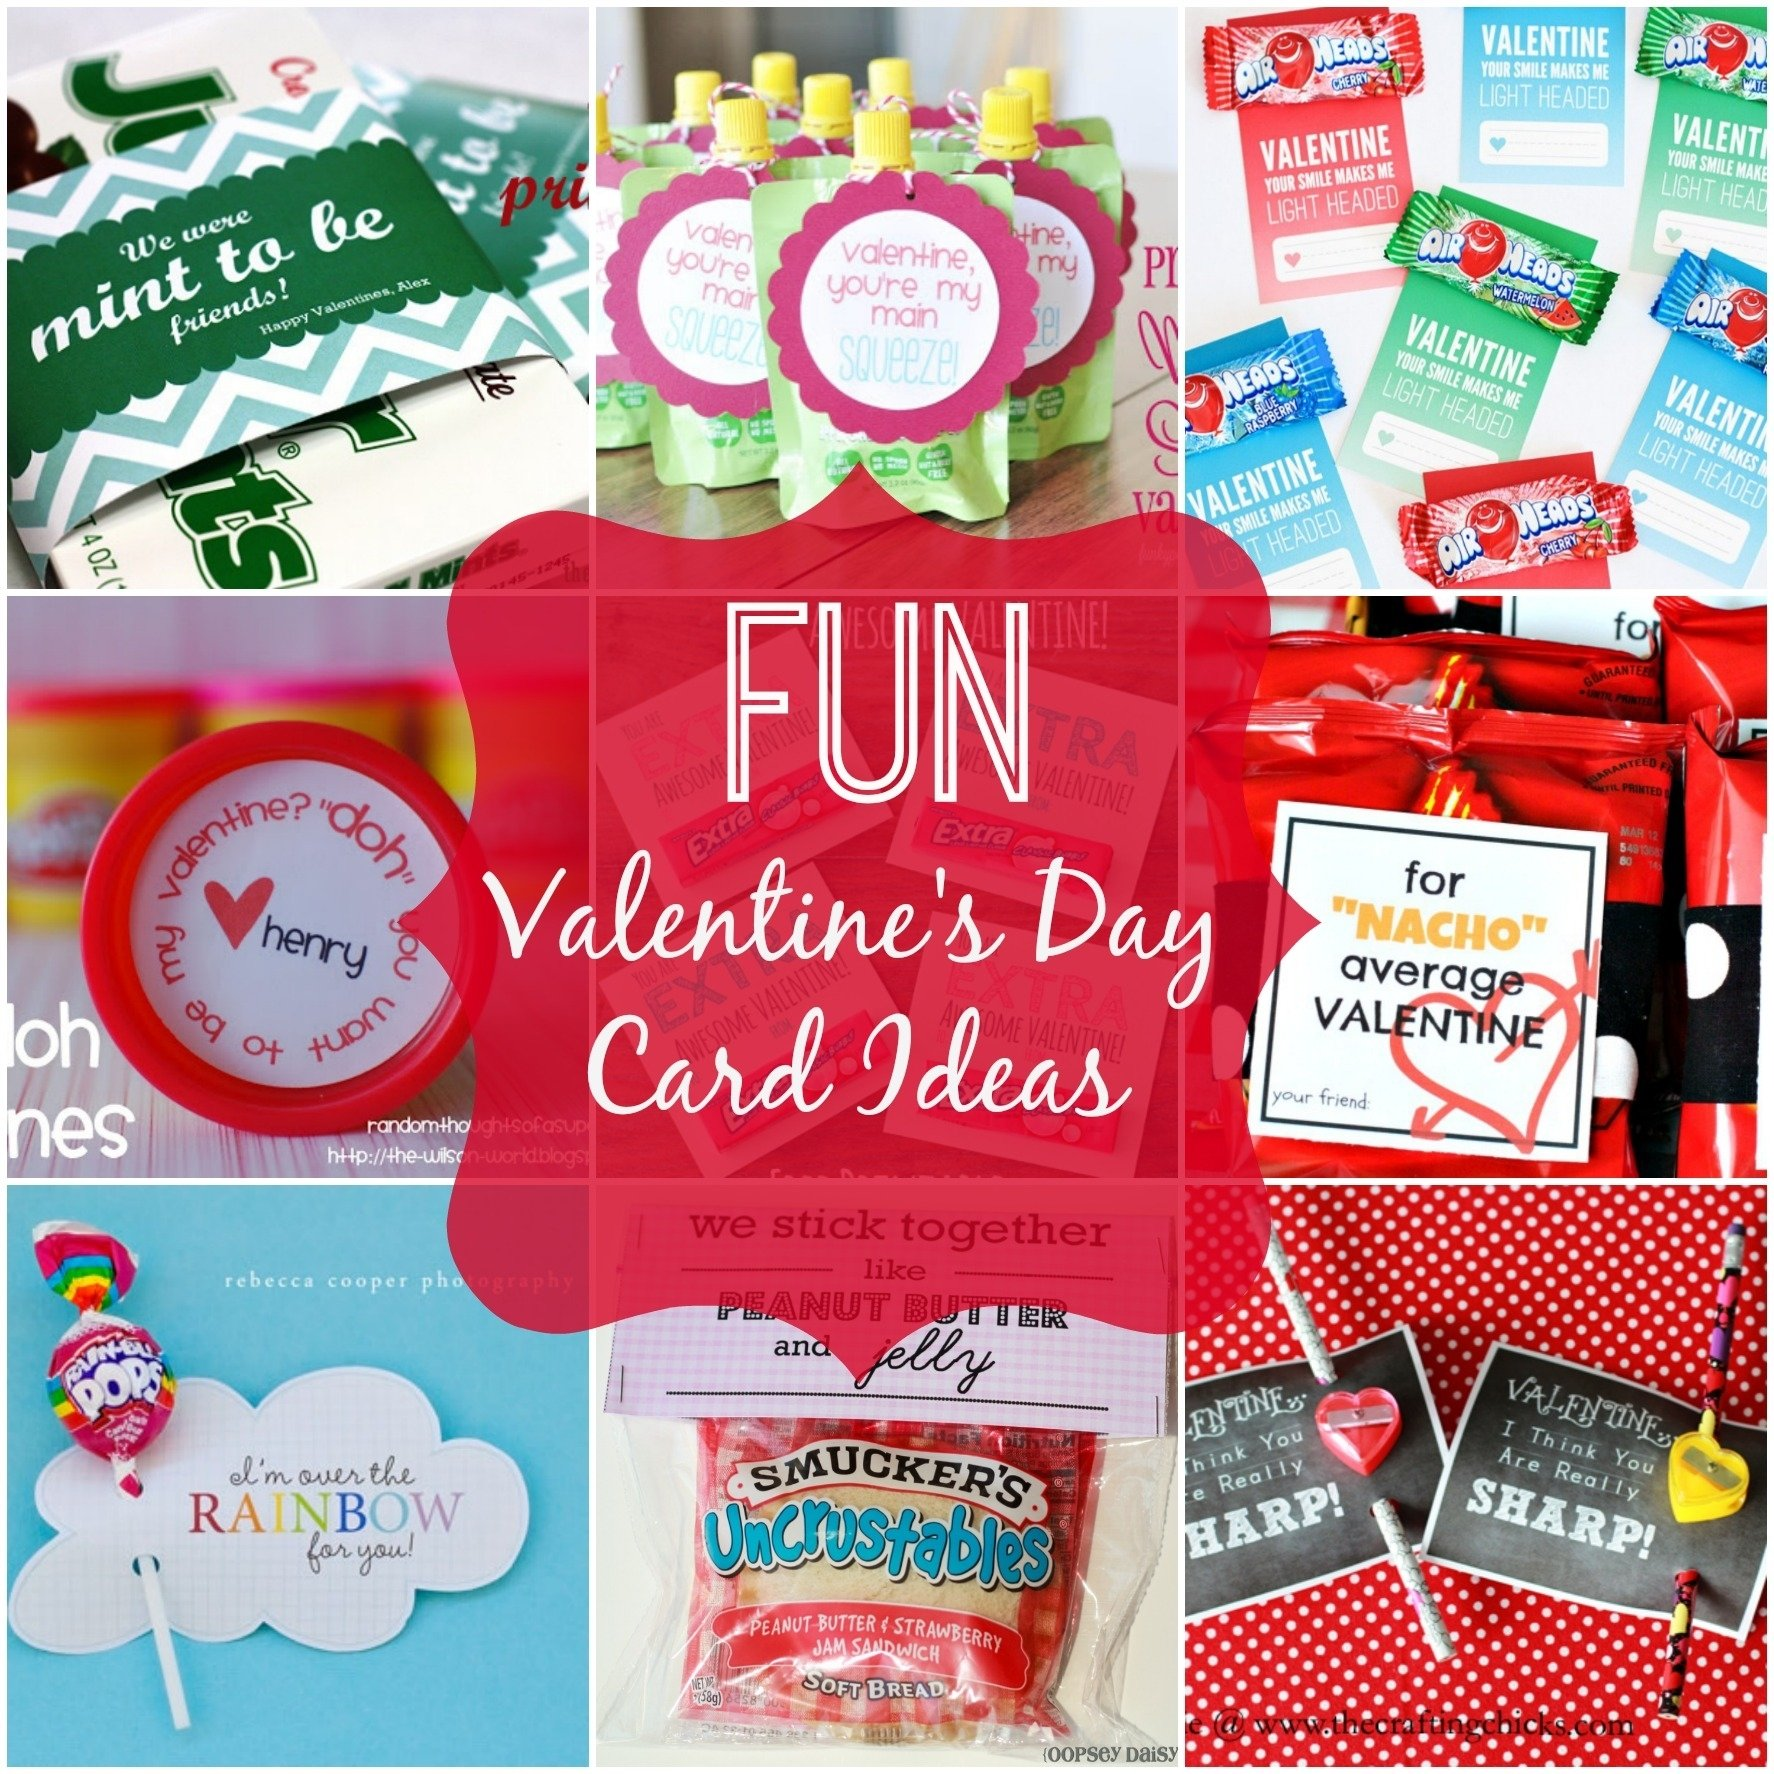 10 Unique Cute Valentines Day Ideas For Friends valentines day diy printable cards ftm 3 2020